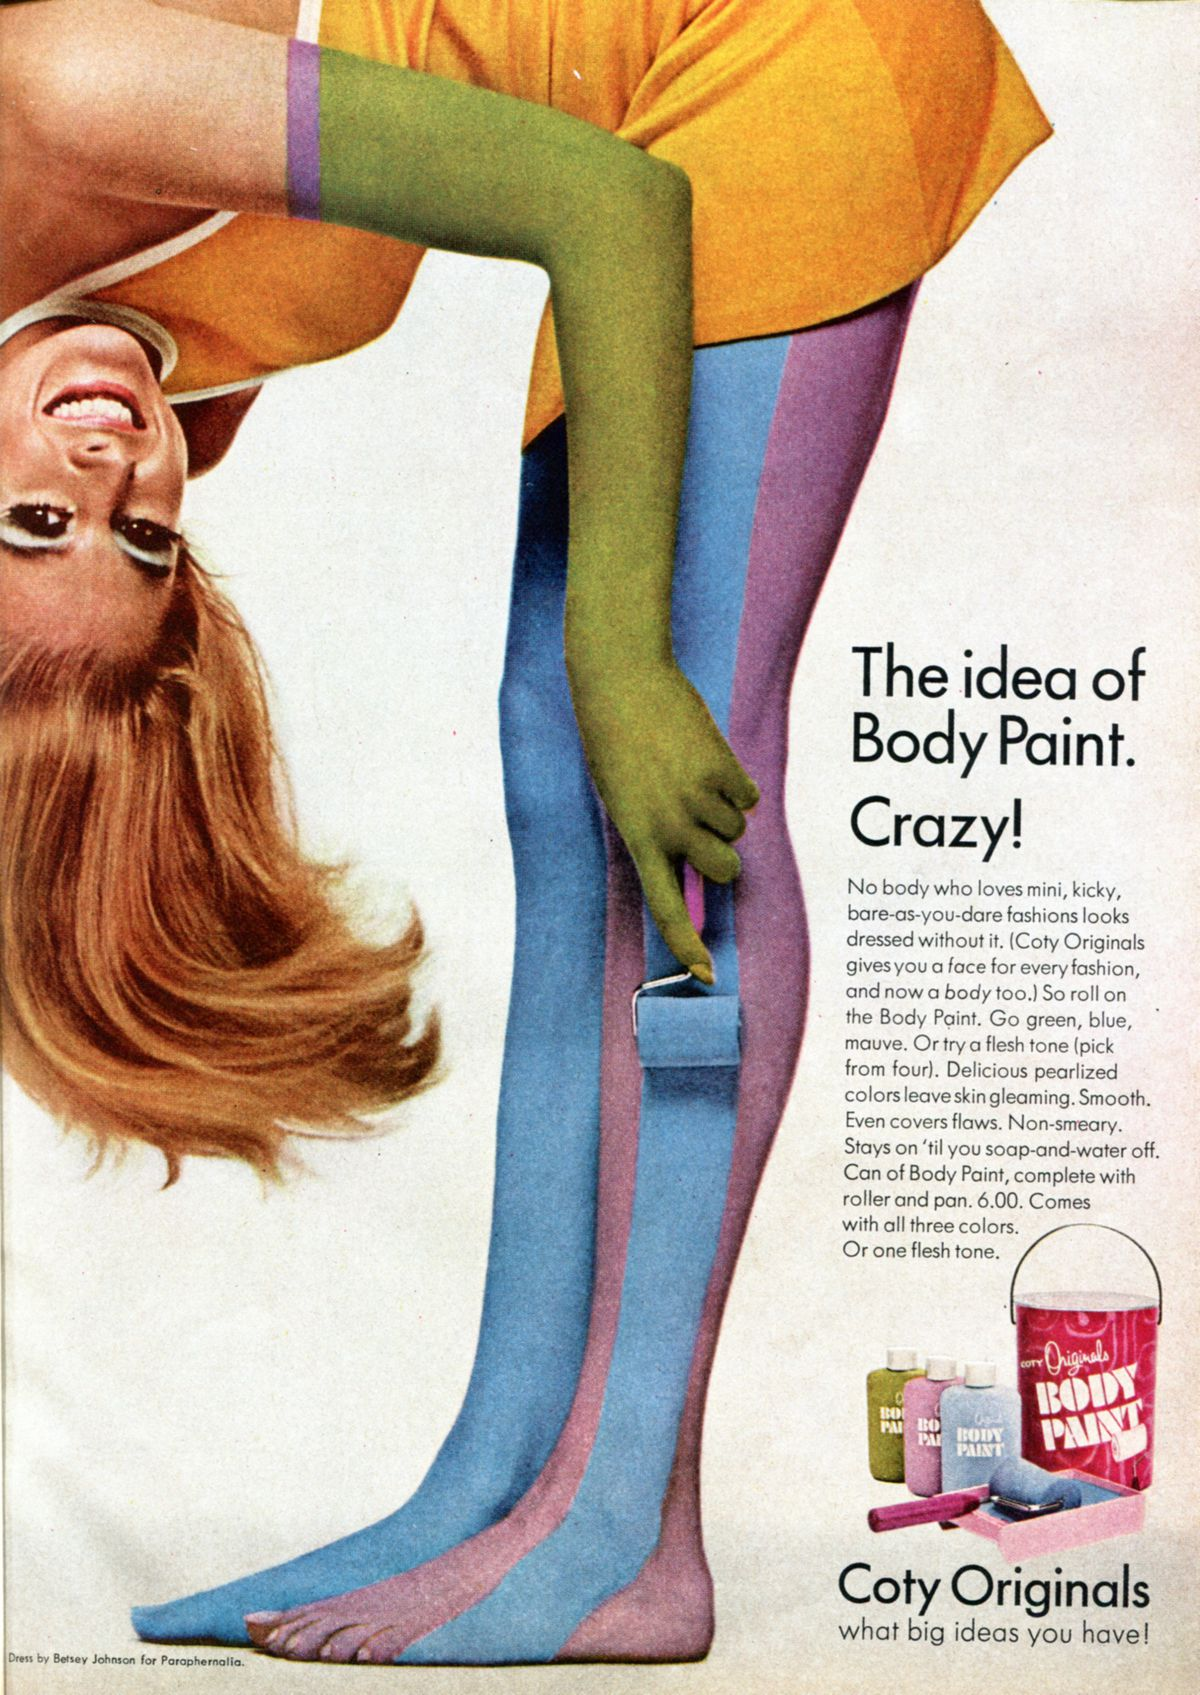 A body paint ad from 1967.